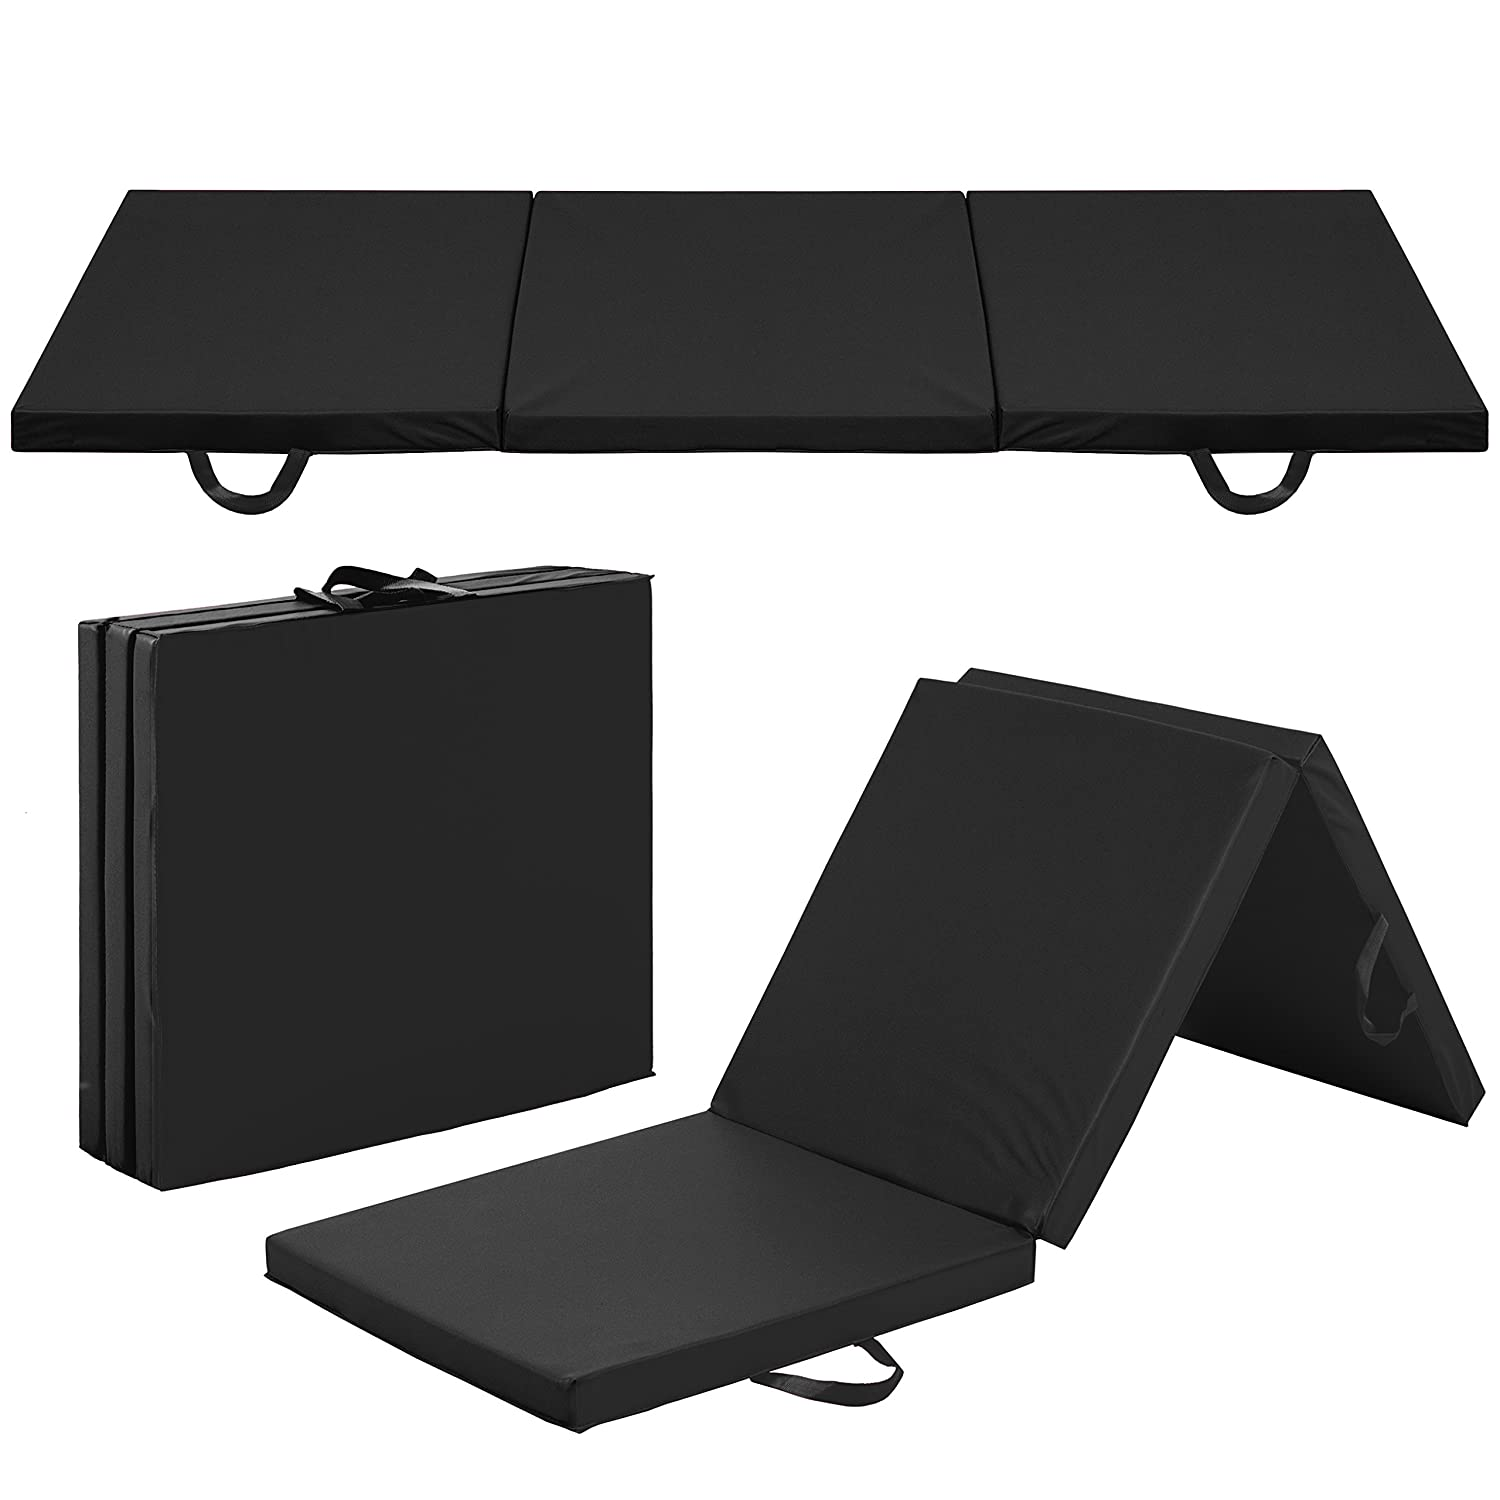 Amazon mats mats flooring sports outdoors tumbling best dailygadgetfo Image collections